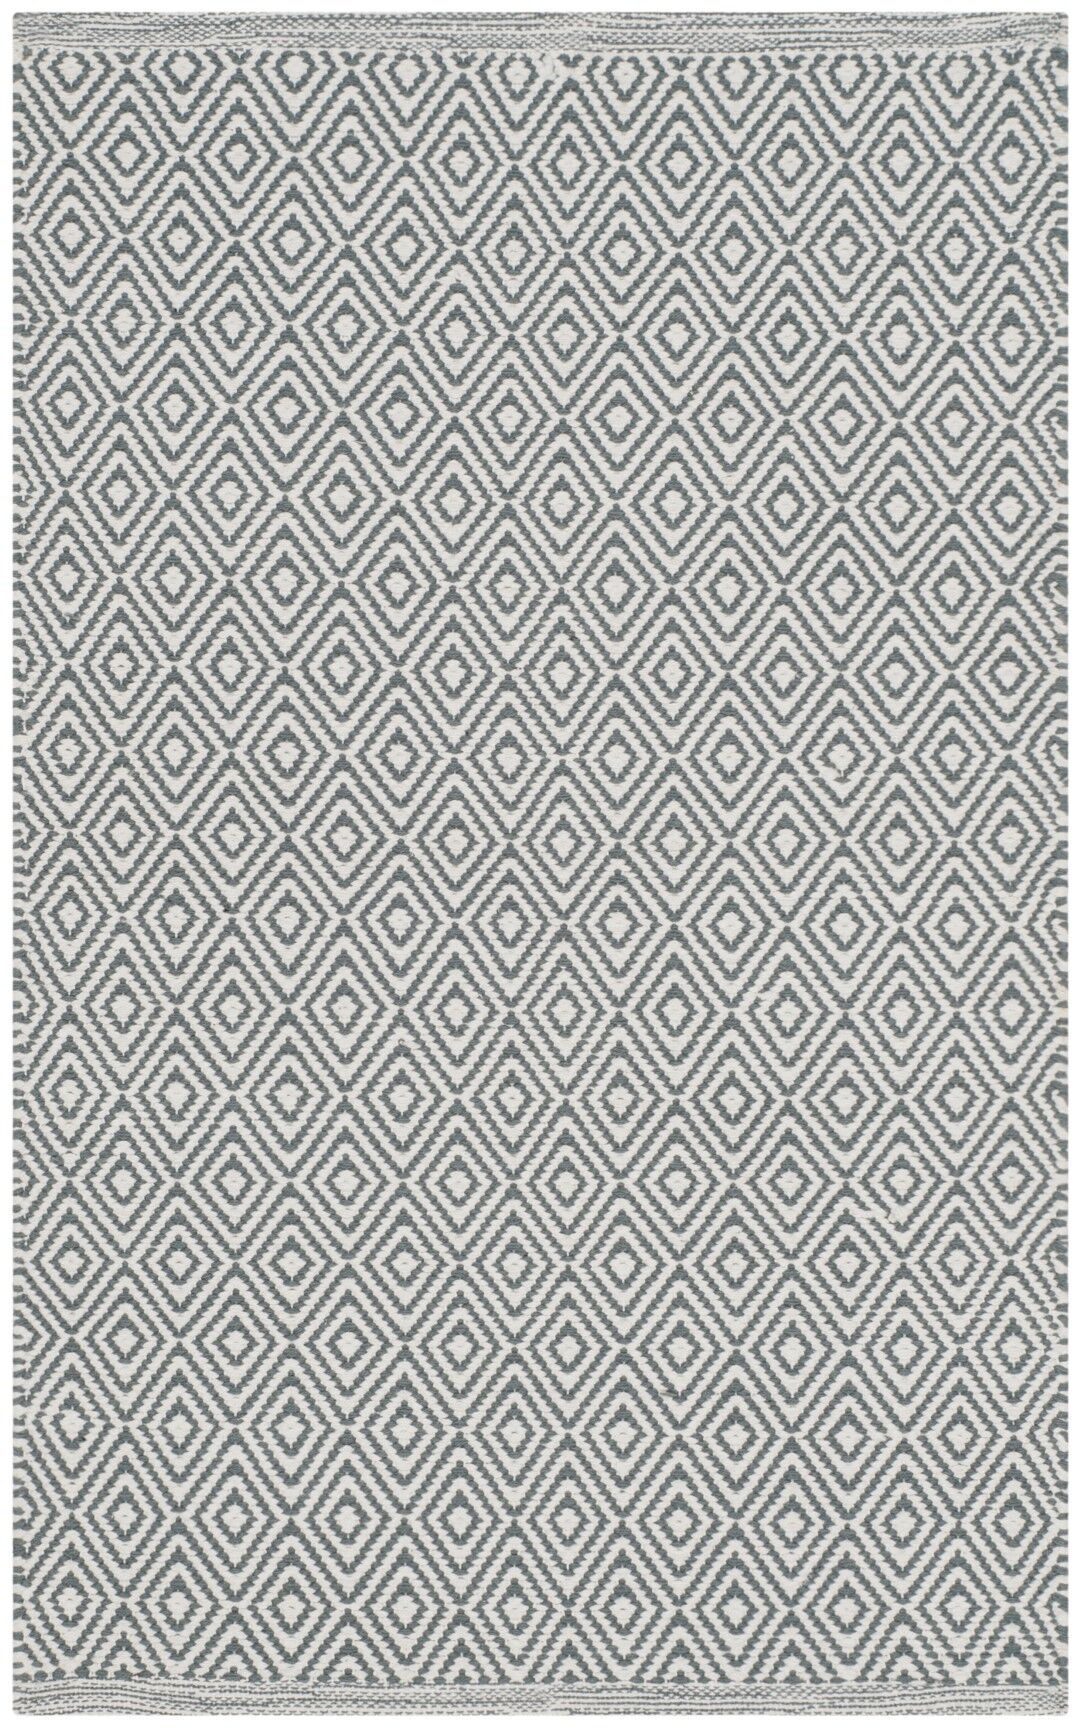 Shevchenko Place Hand-Woven Ivory/Gray Area Rug Rug Size: Rectangle 6' x 9'